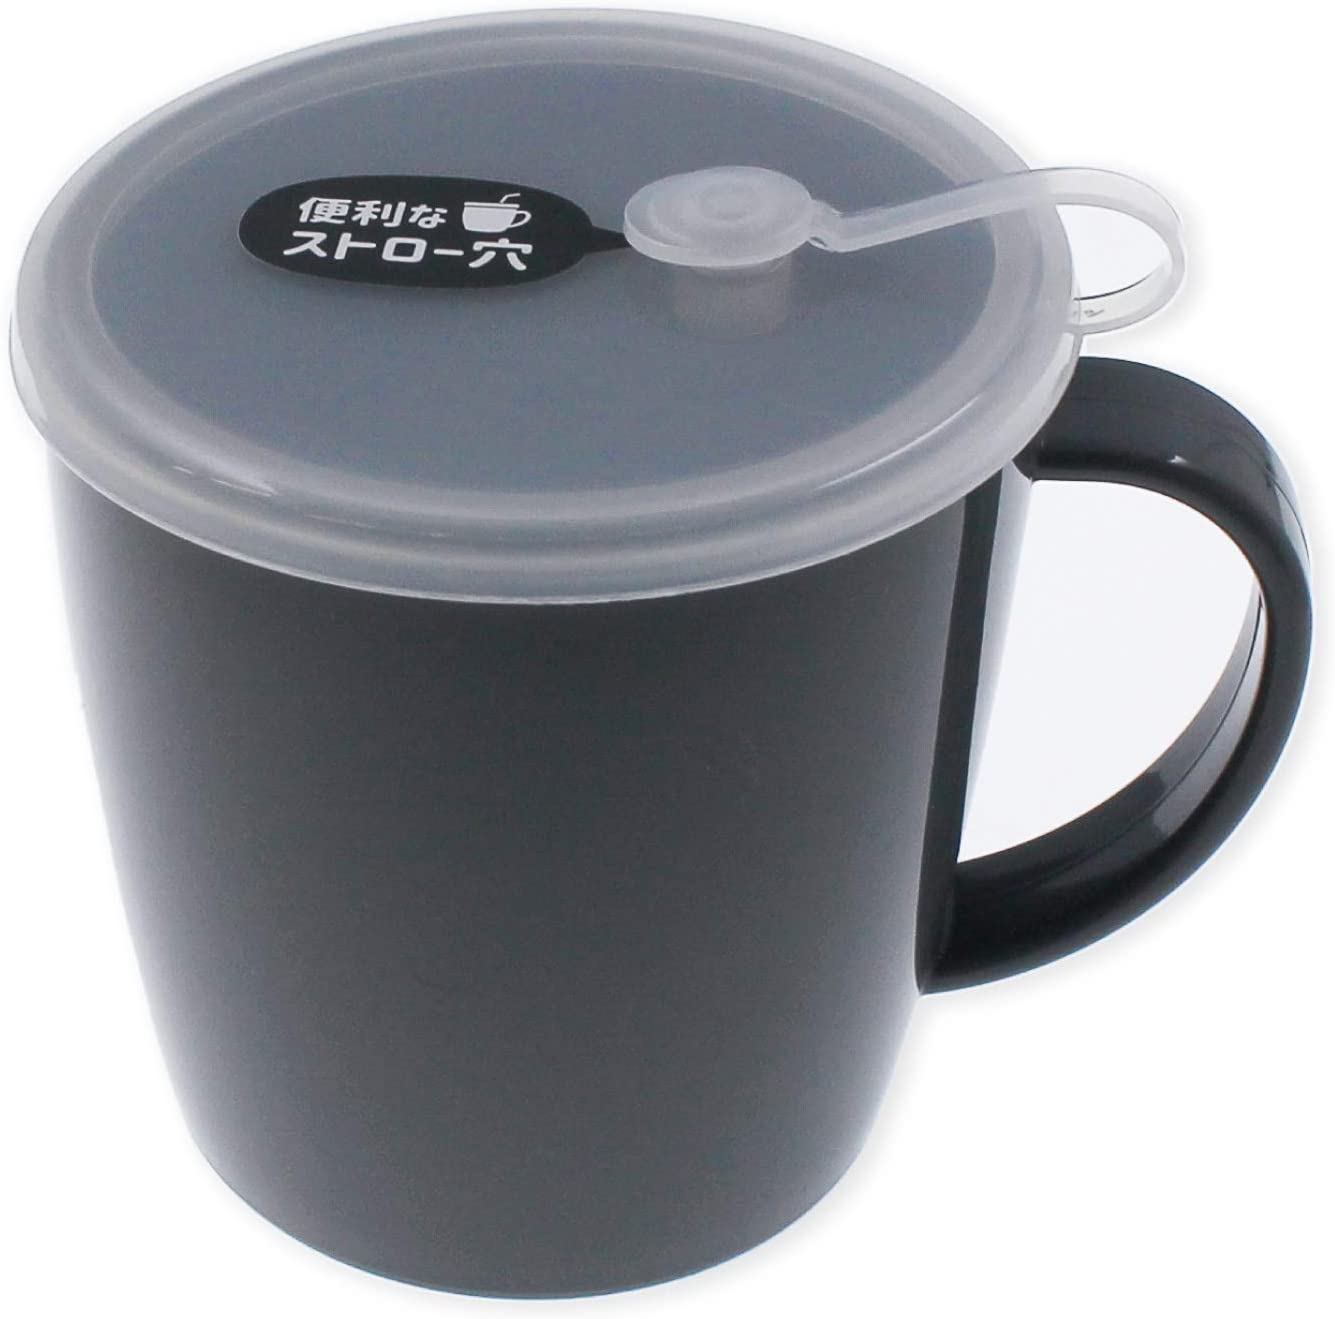 Mug cup and Lid with a straw hole, for Kids, Nursing, Travel, BPA Free Non-Toxic, Microwave oven, dishwasher safe, Unbreakable -Made in Japan (Gray)